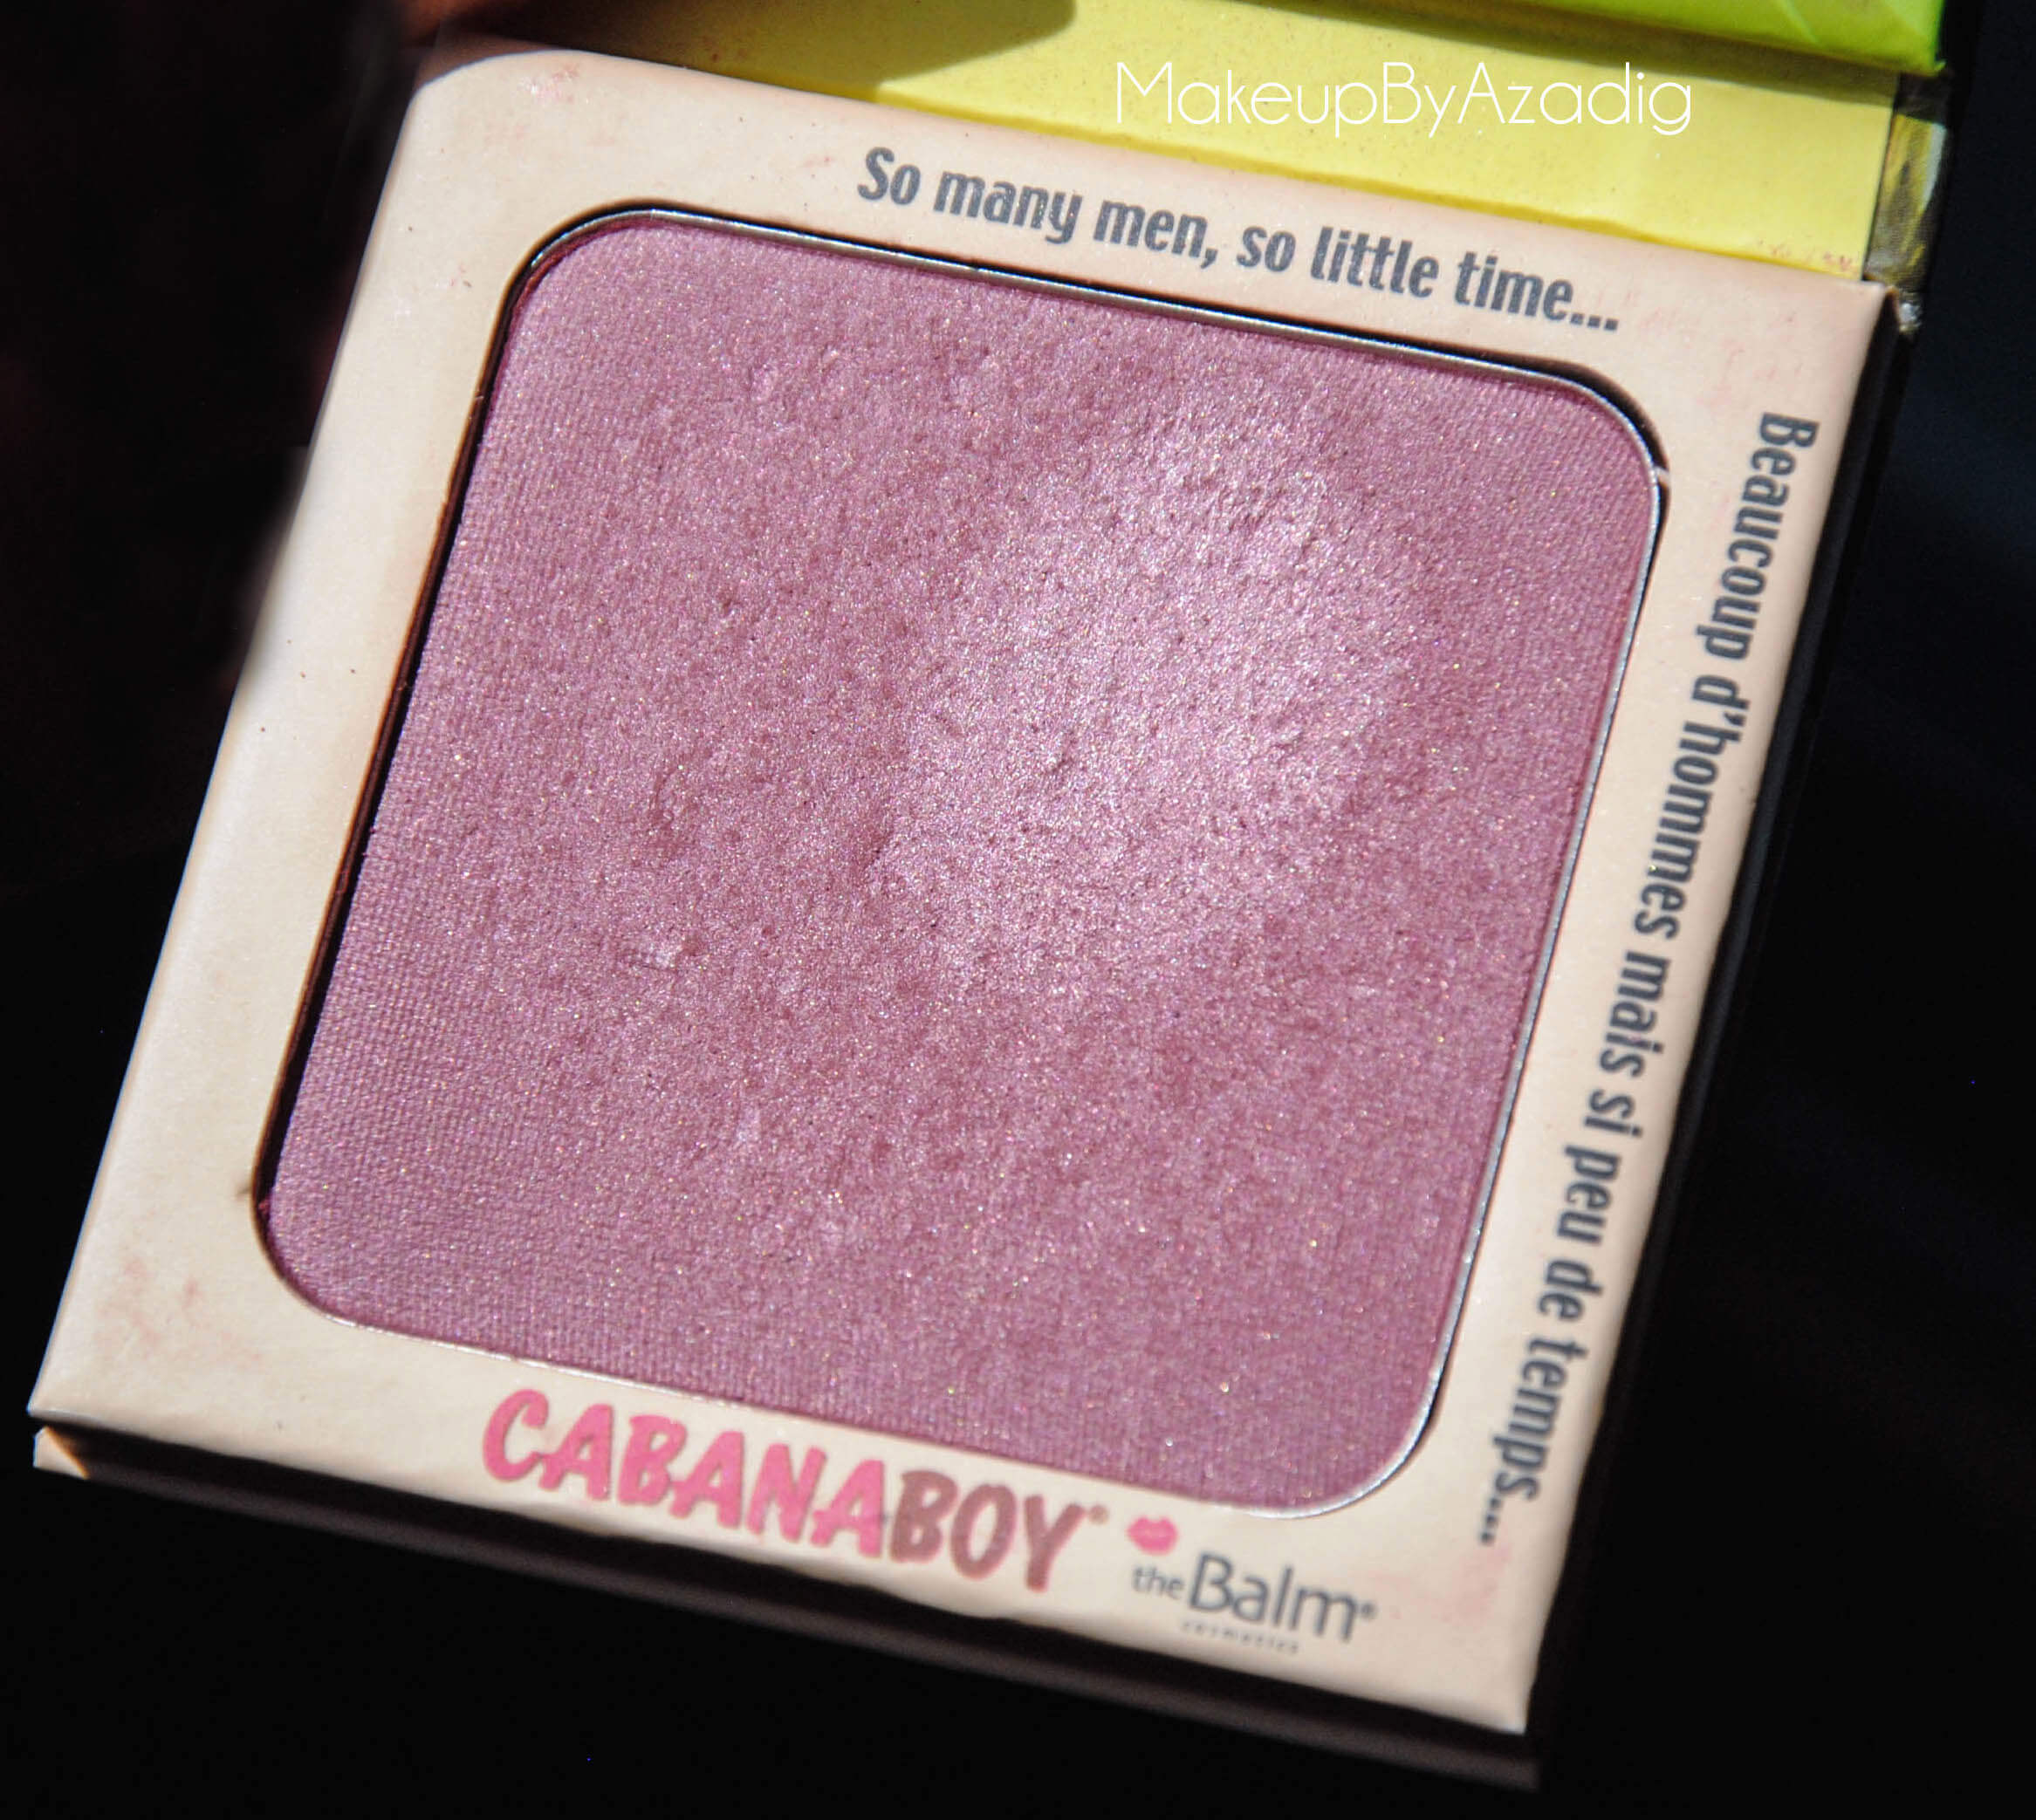 cabanaboy-the balm-blush rose fonce-monoprix-beaute privee-the beautyst-makeupbyazadig-sun